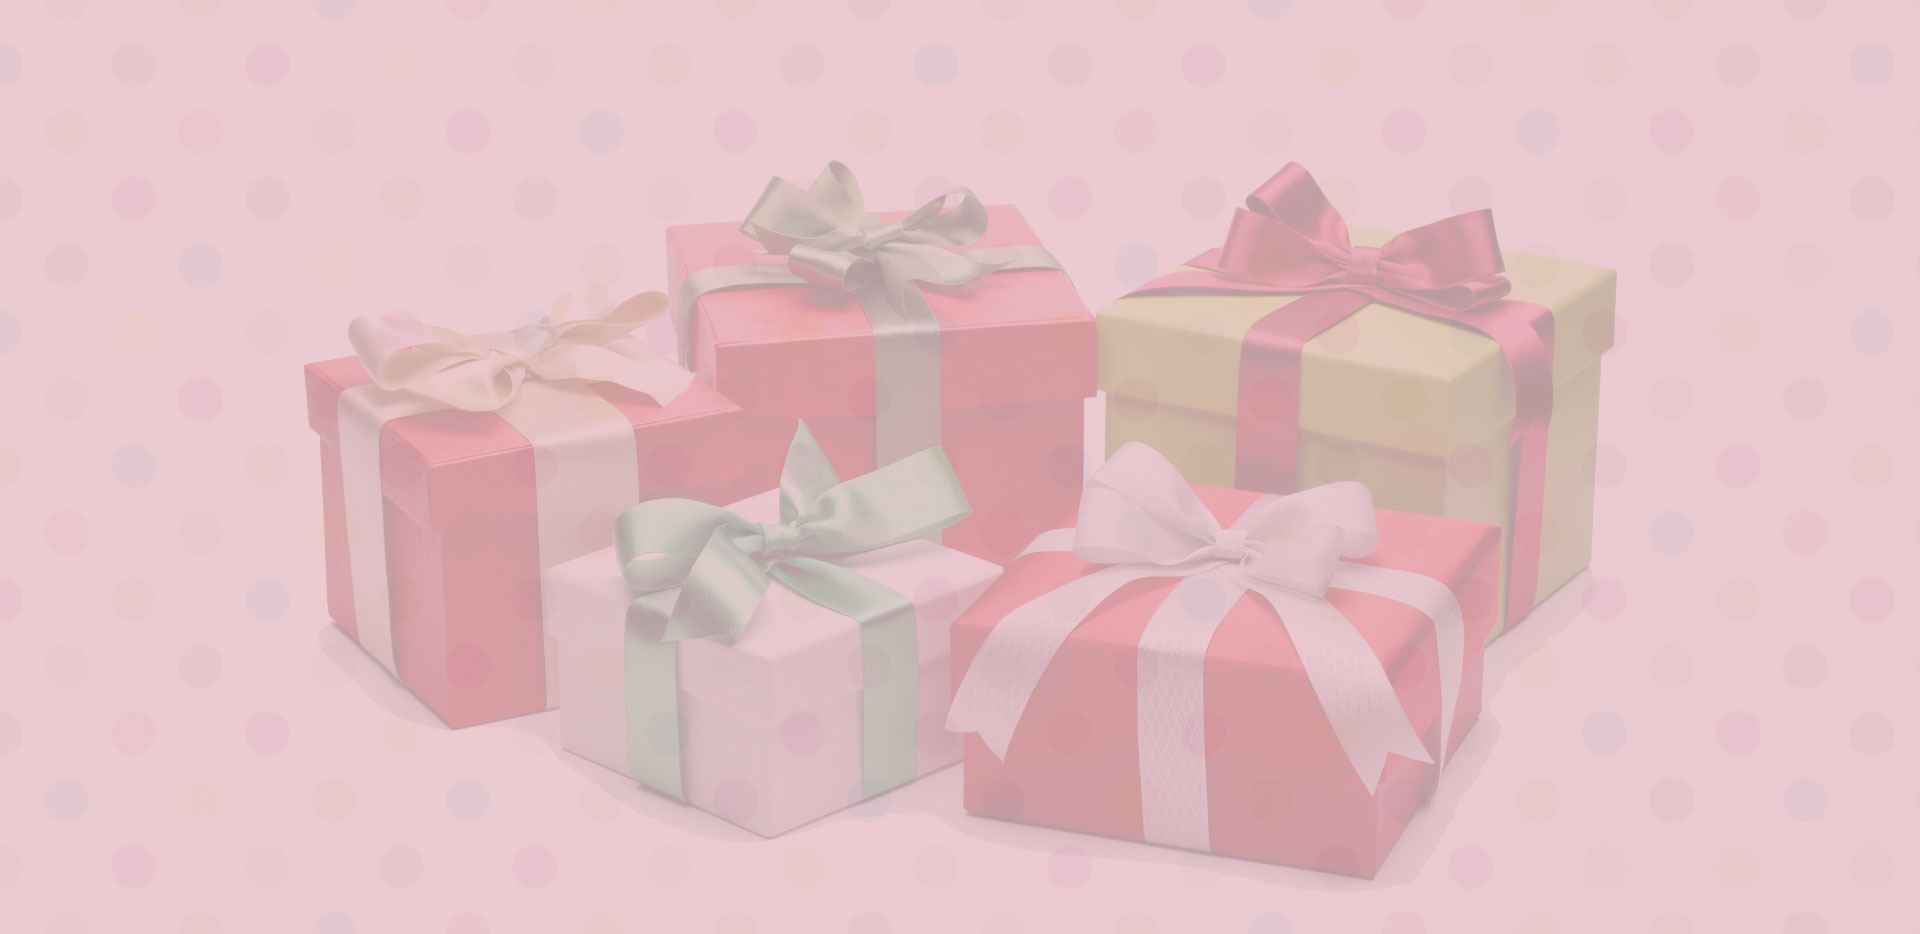 The Gift Source – Something Awesome Inside